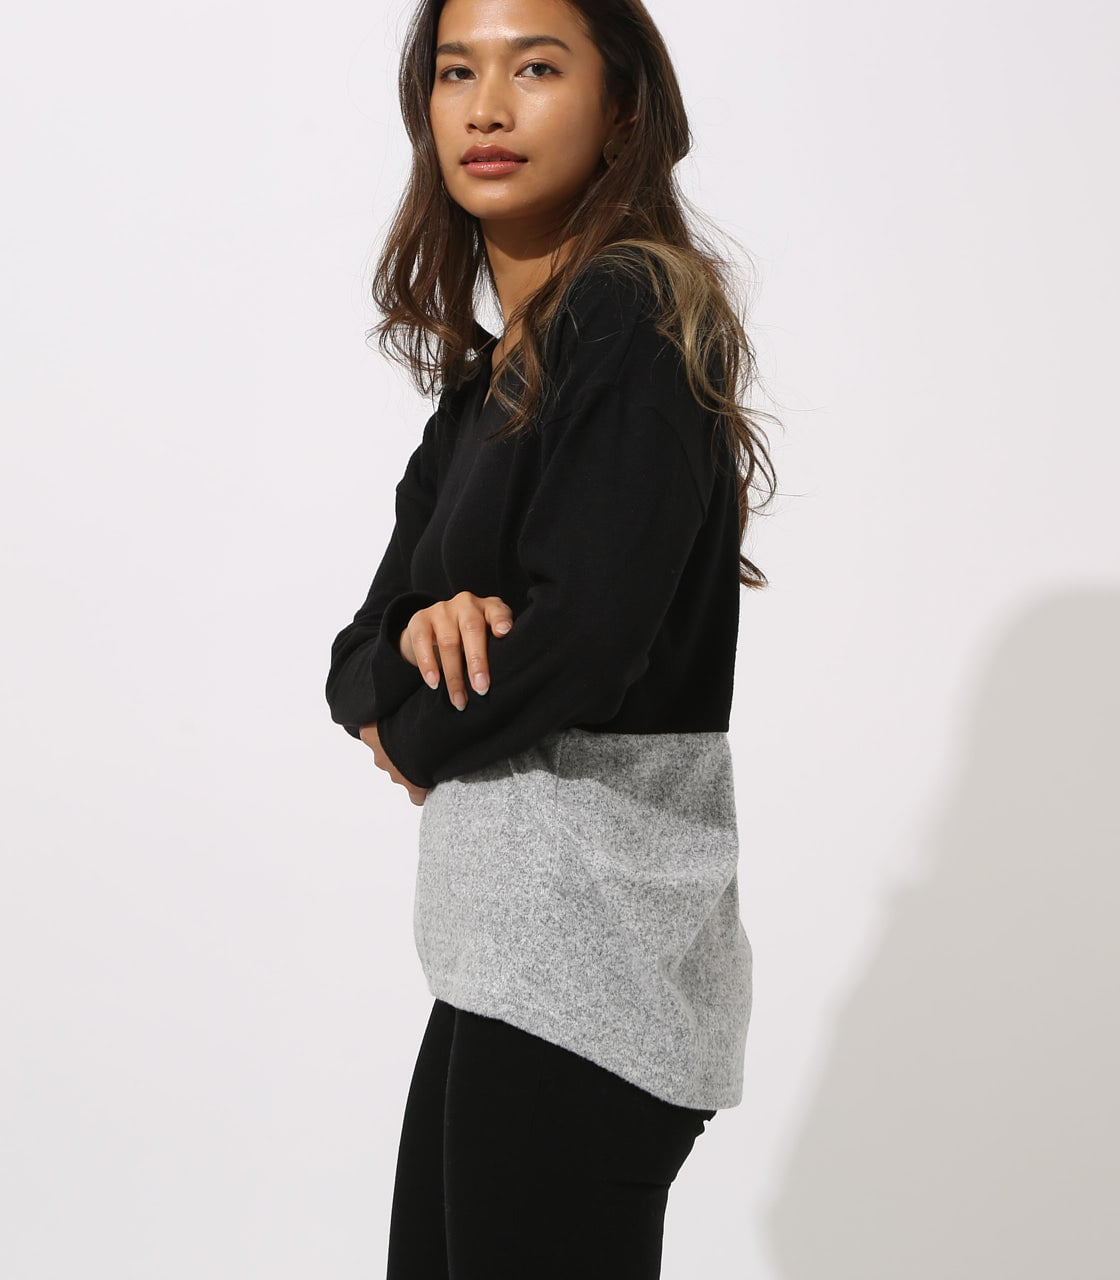 【AZUL BY MOUSSY】BICOLOR V NECK TOPS 詳細画像 柄BLK 2